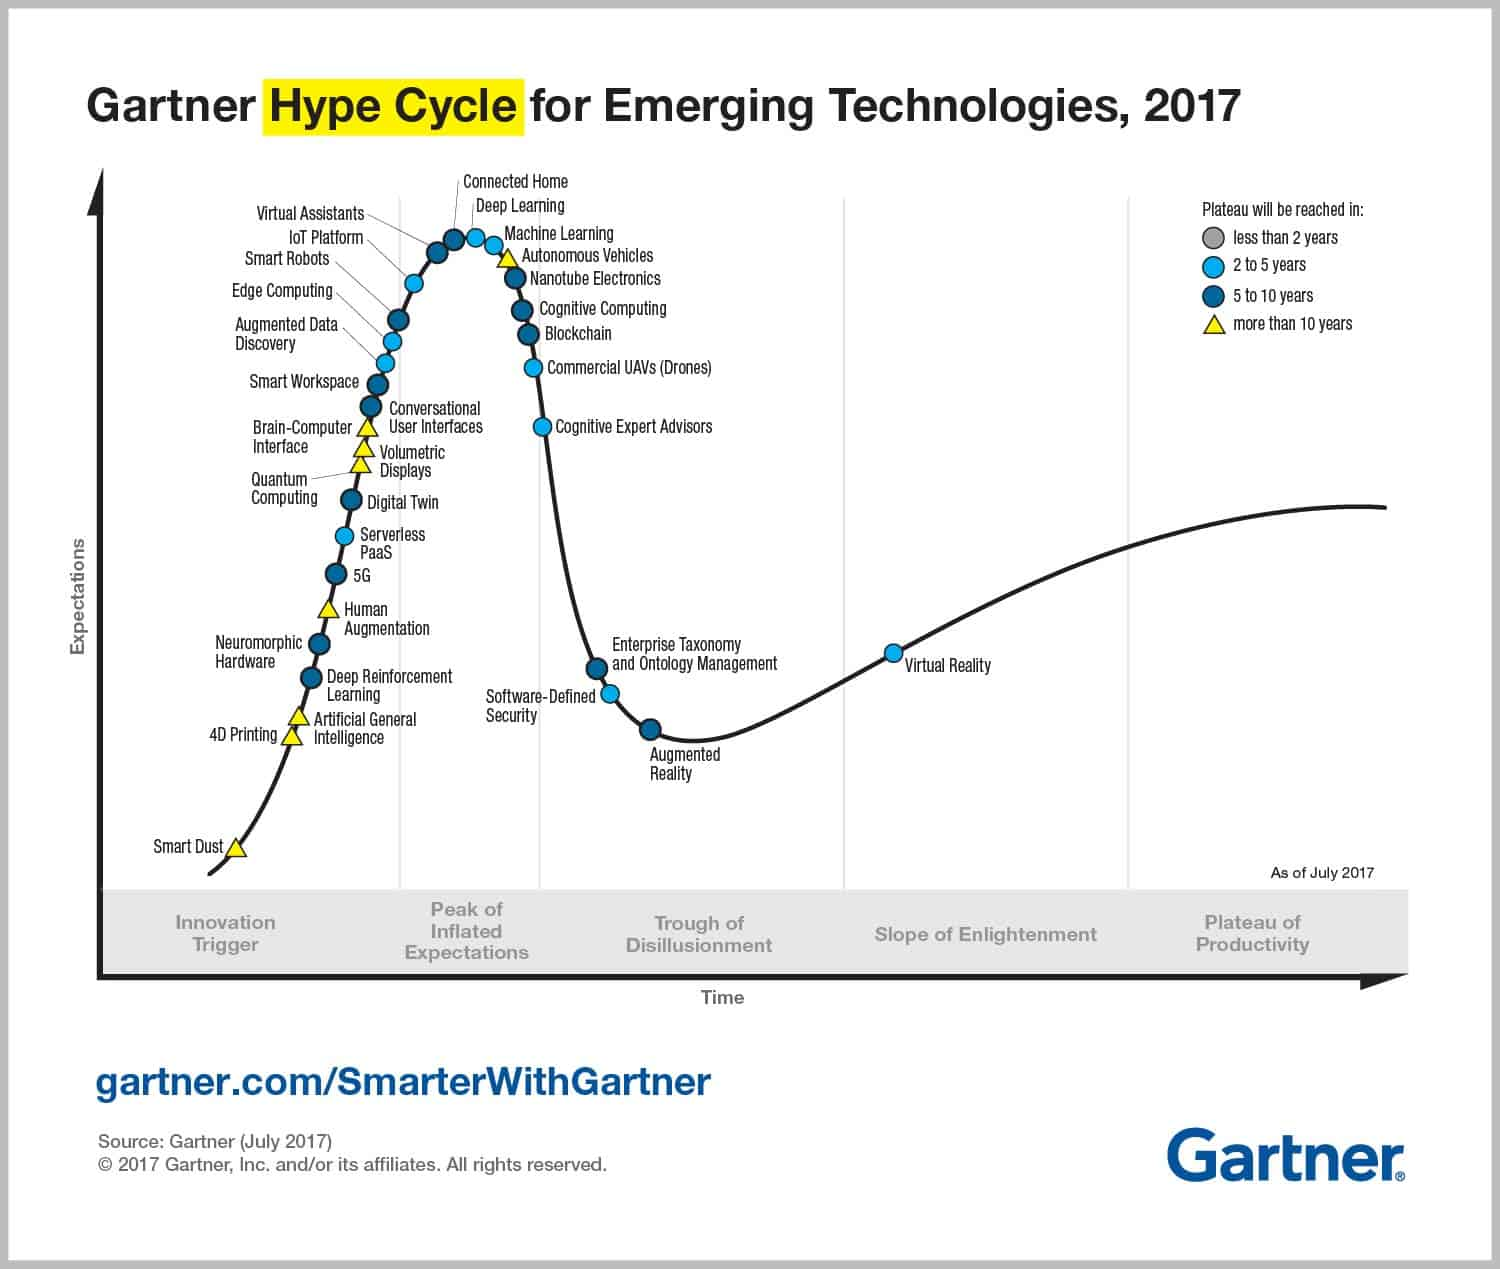 Emerging-Technology-Hype-Cycle-for-2017_Infographic_R6A